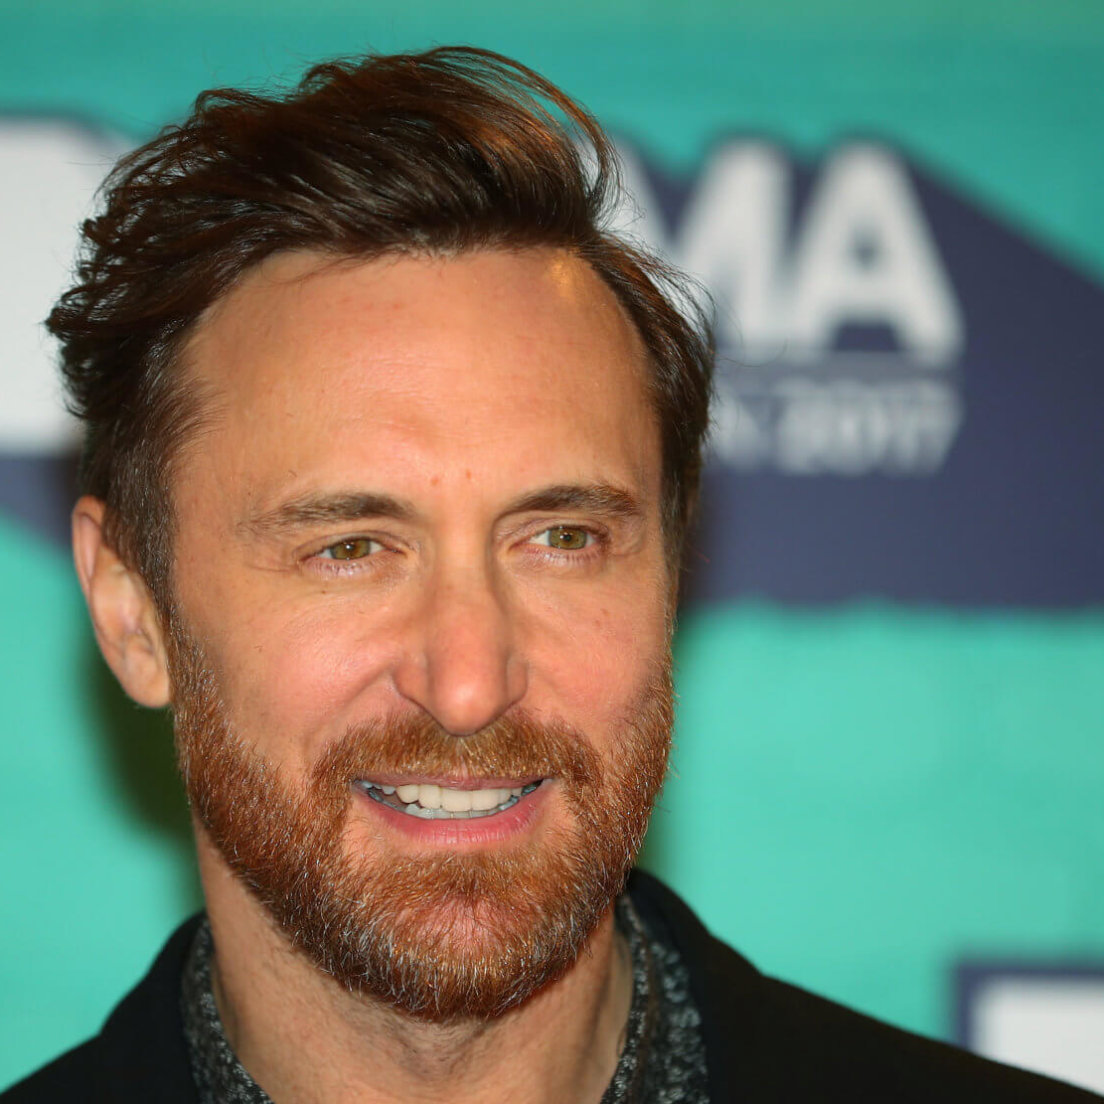 Mayor to hold COVID-19 charity event with DJ David Guetta